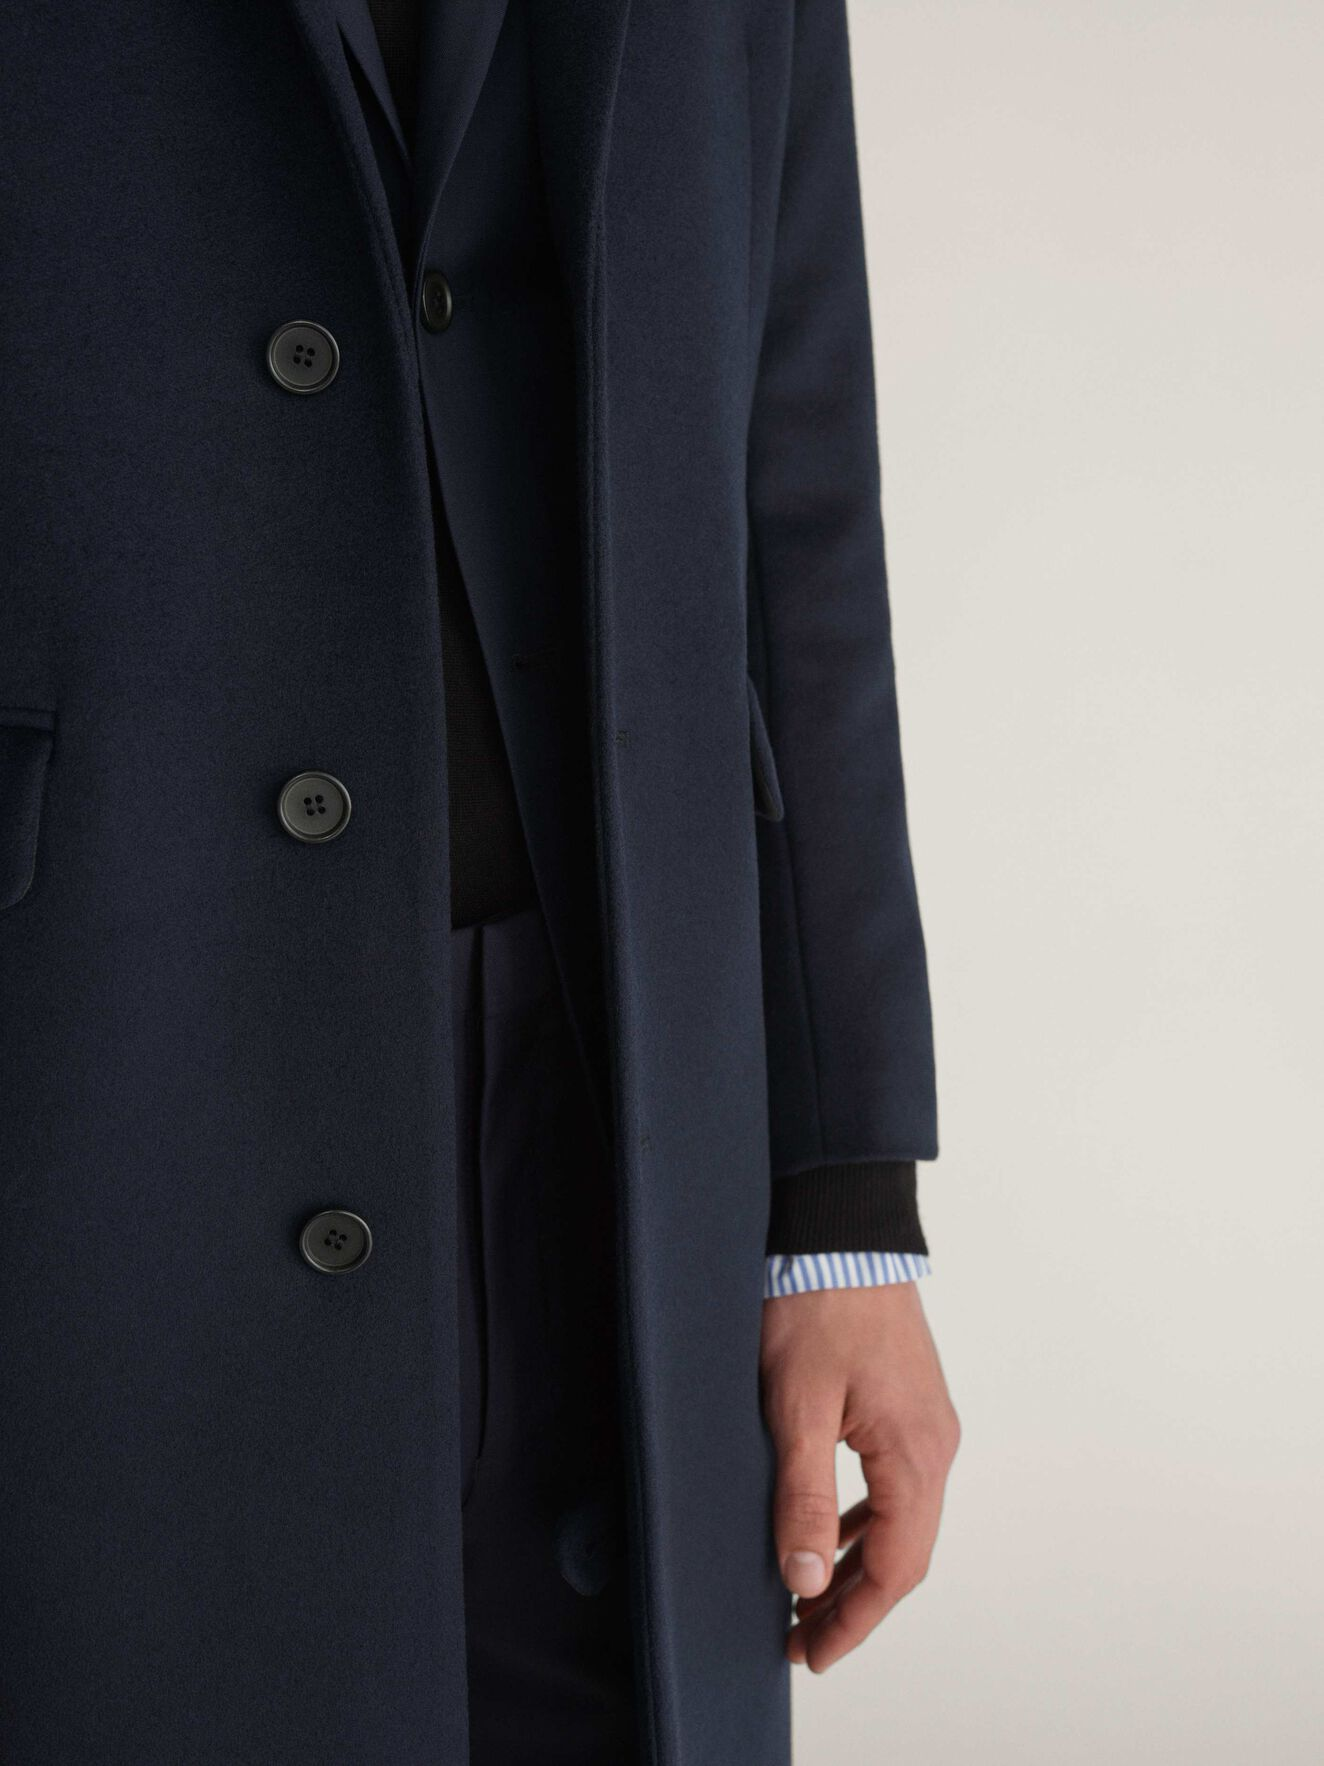 Coltmar Coat in Light Ink from Tiger of Sweden